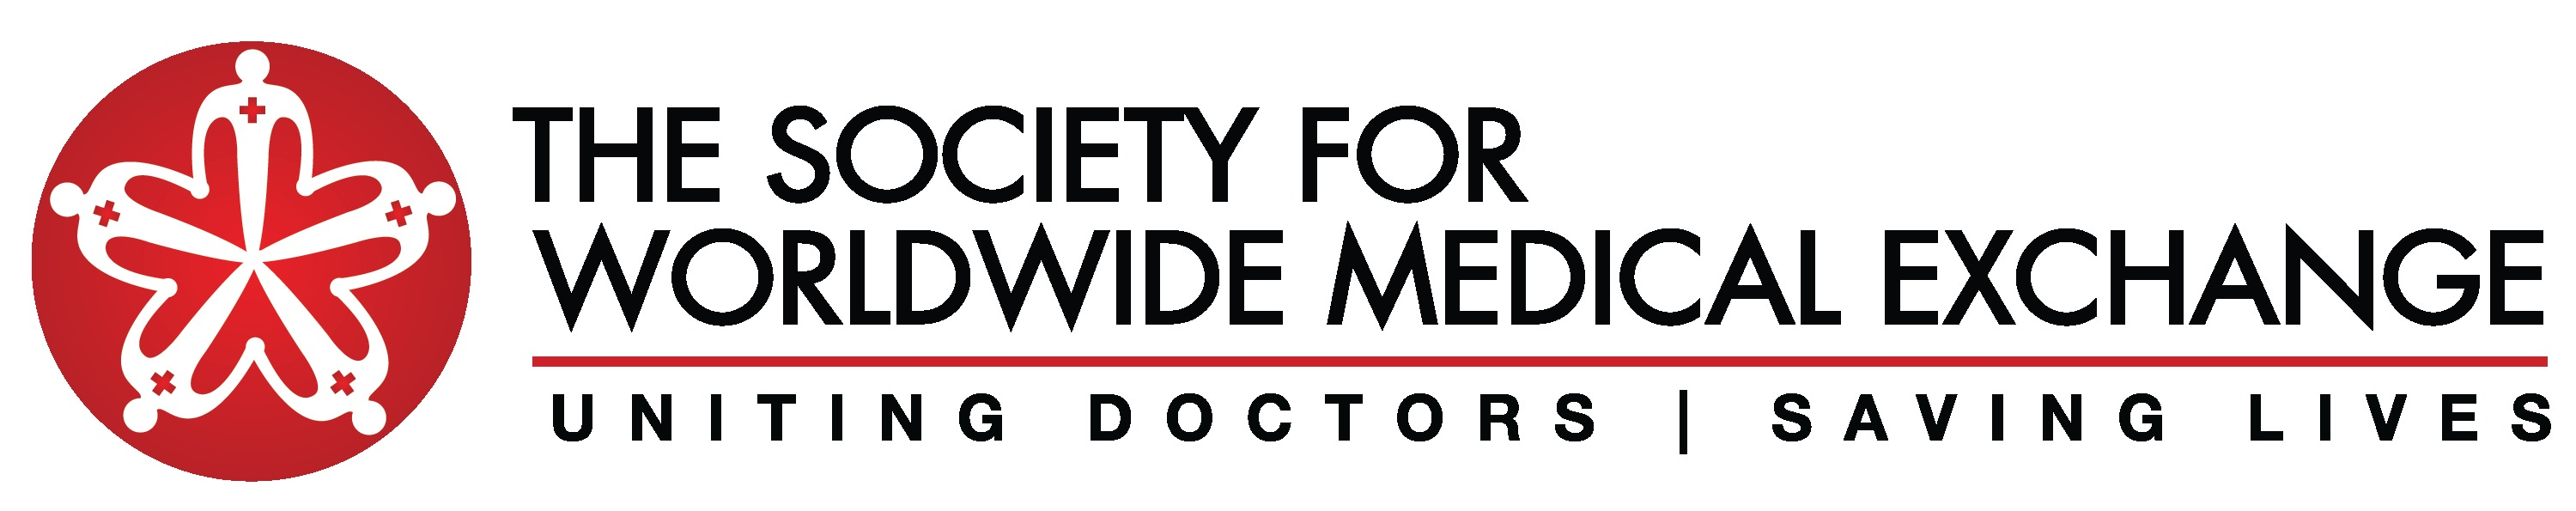 Society for Worldwide Medical Exchange